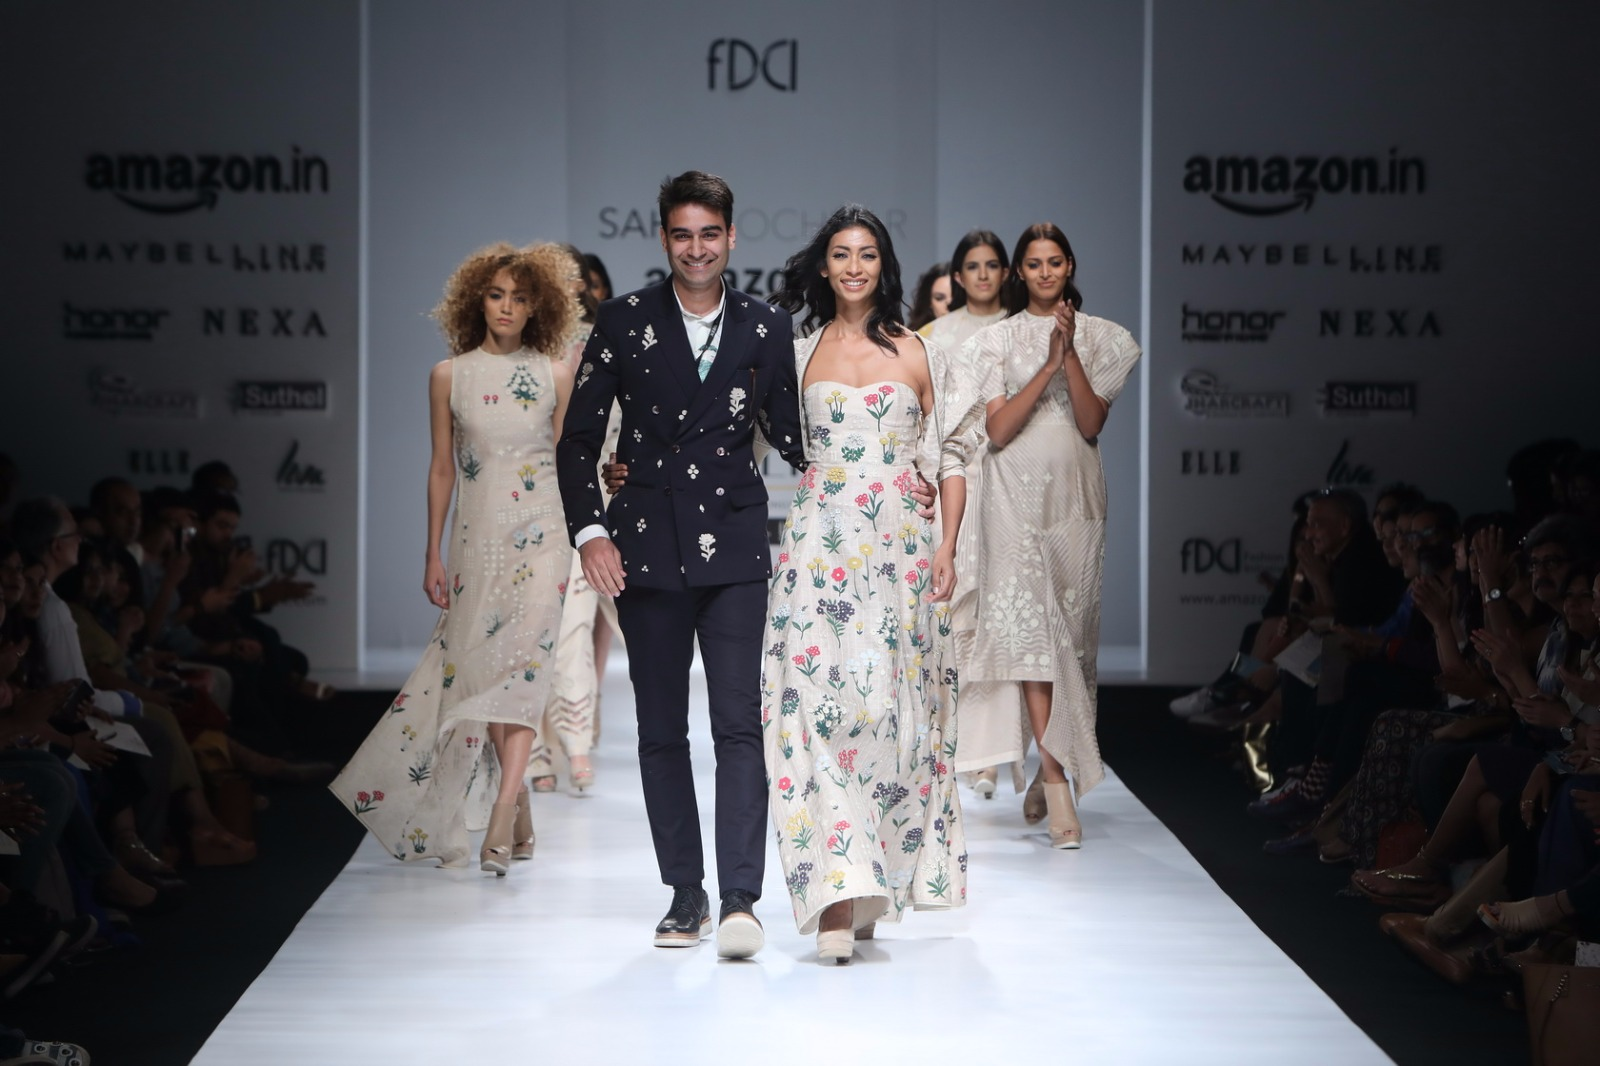 http://www.talksassy.com/wp-content/uploads/2017/03/Amazon-India-Fashion-Week-Autumn-Winter-2017-20.jpg